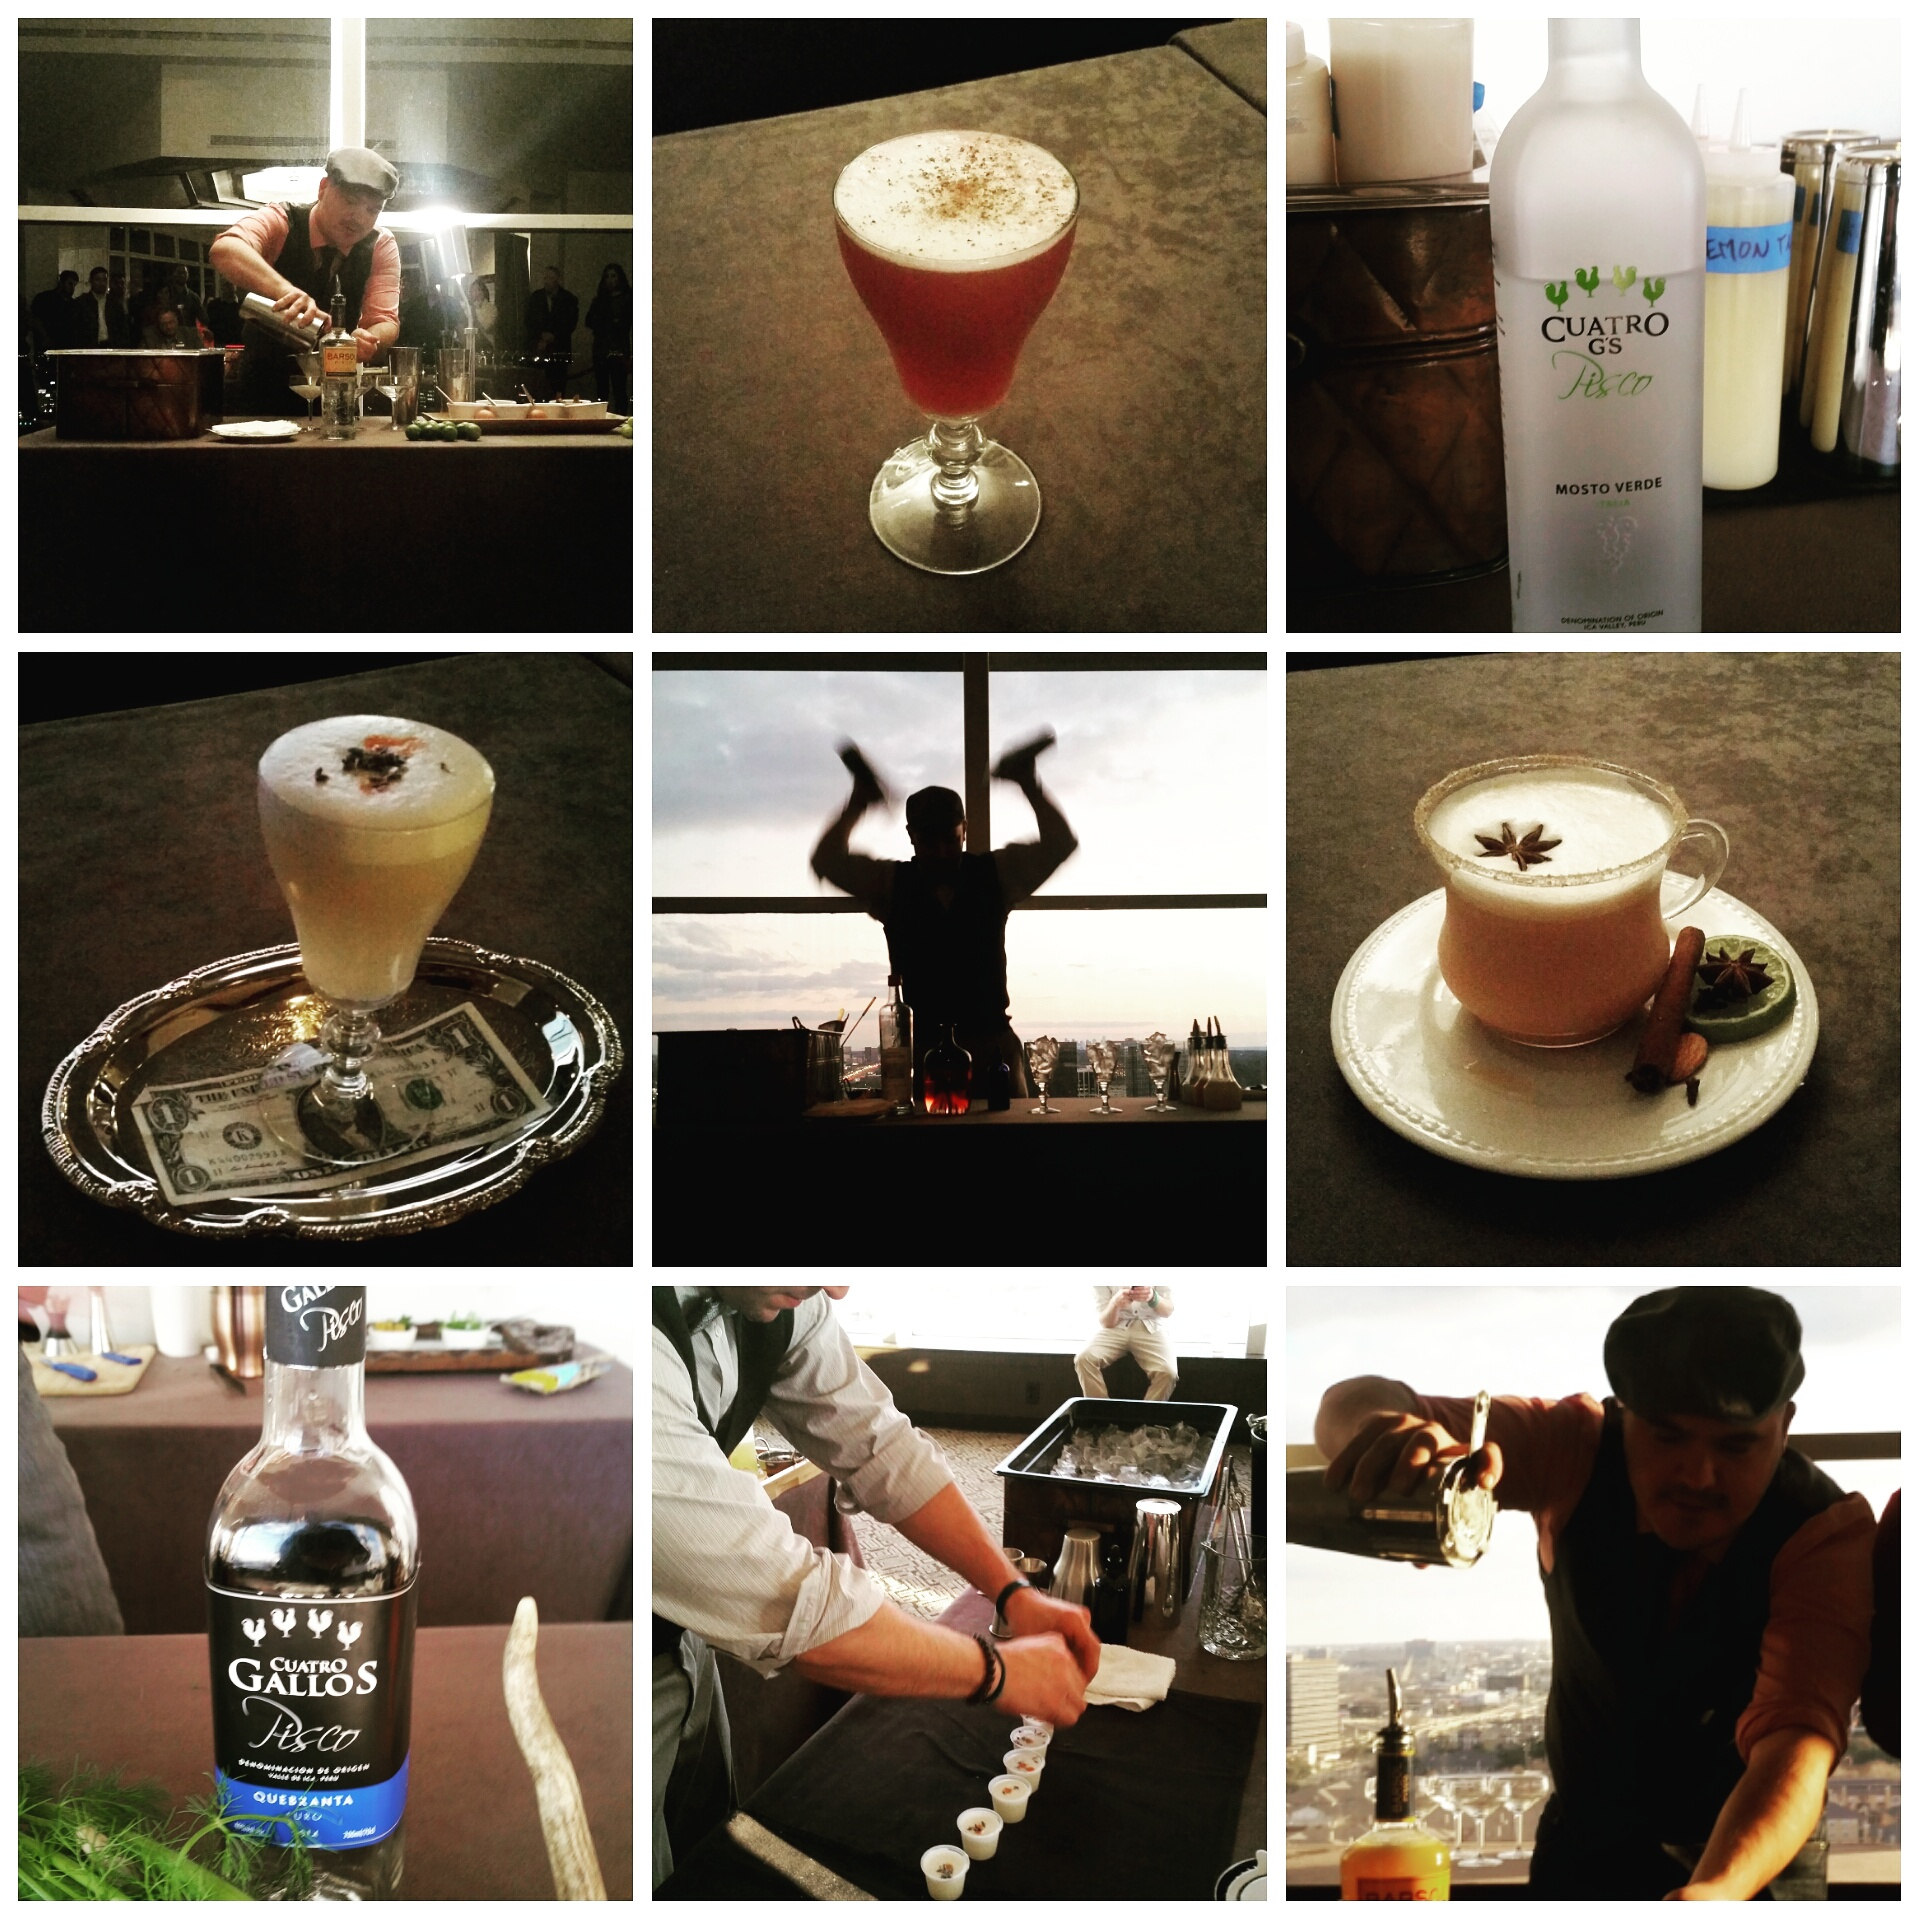 If February's Pisco Sour competition offers any clues, you're in for a treat Monday.